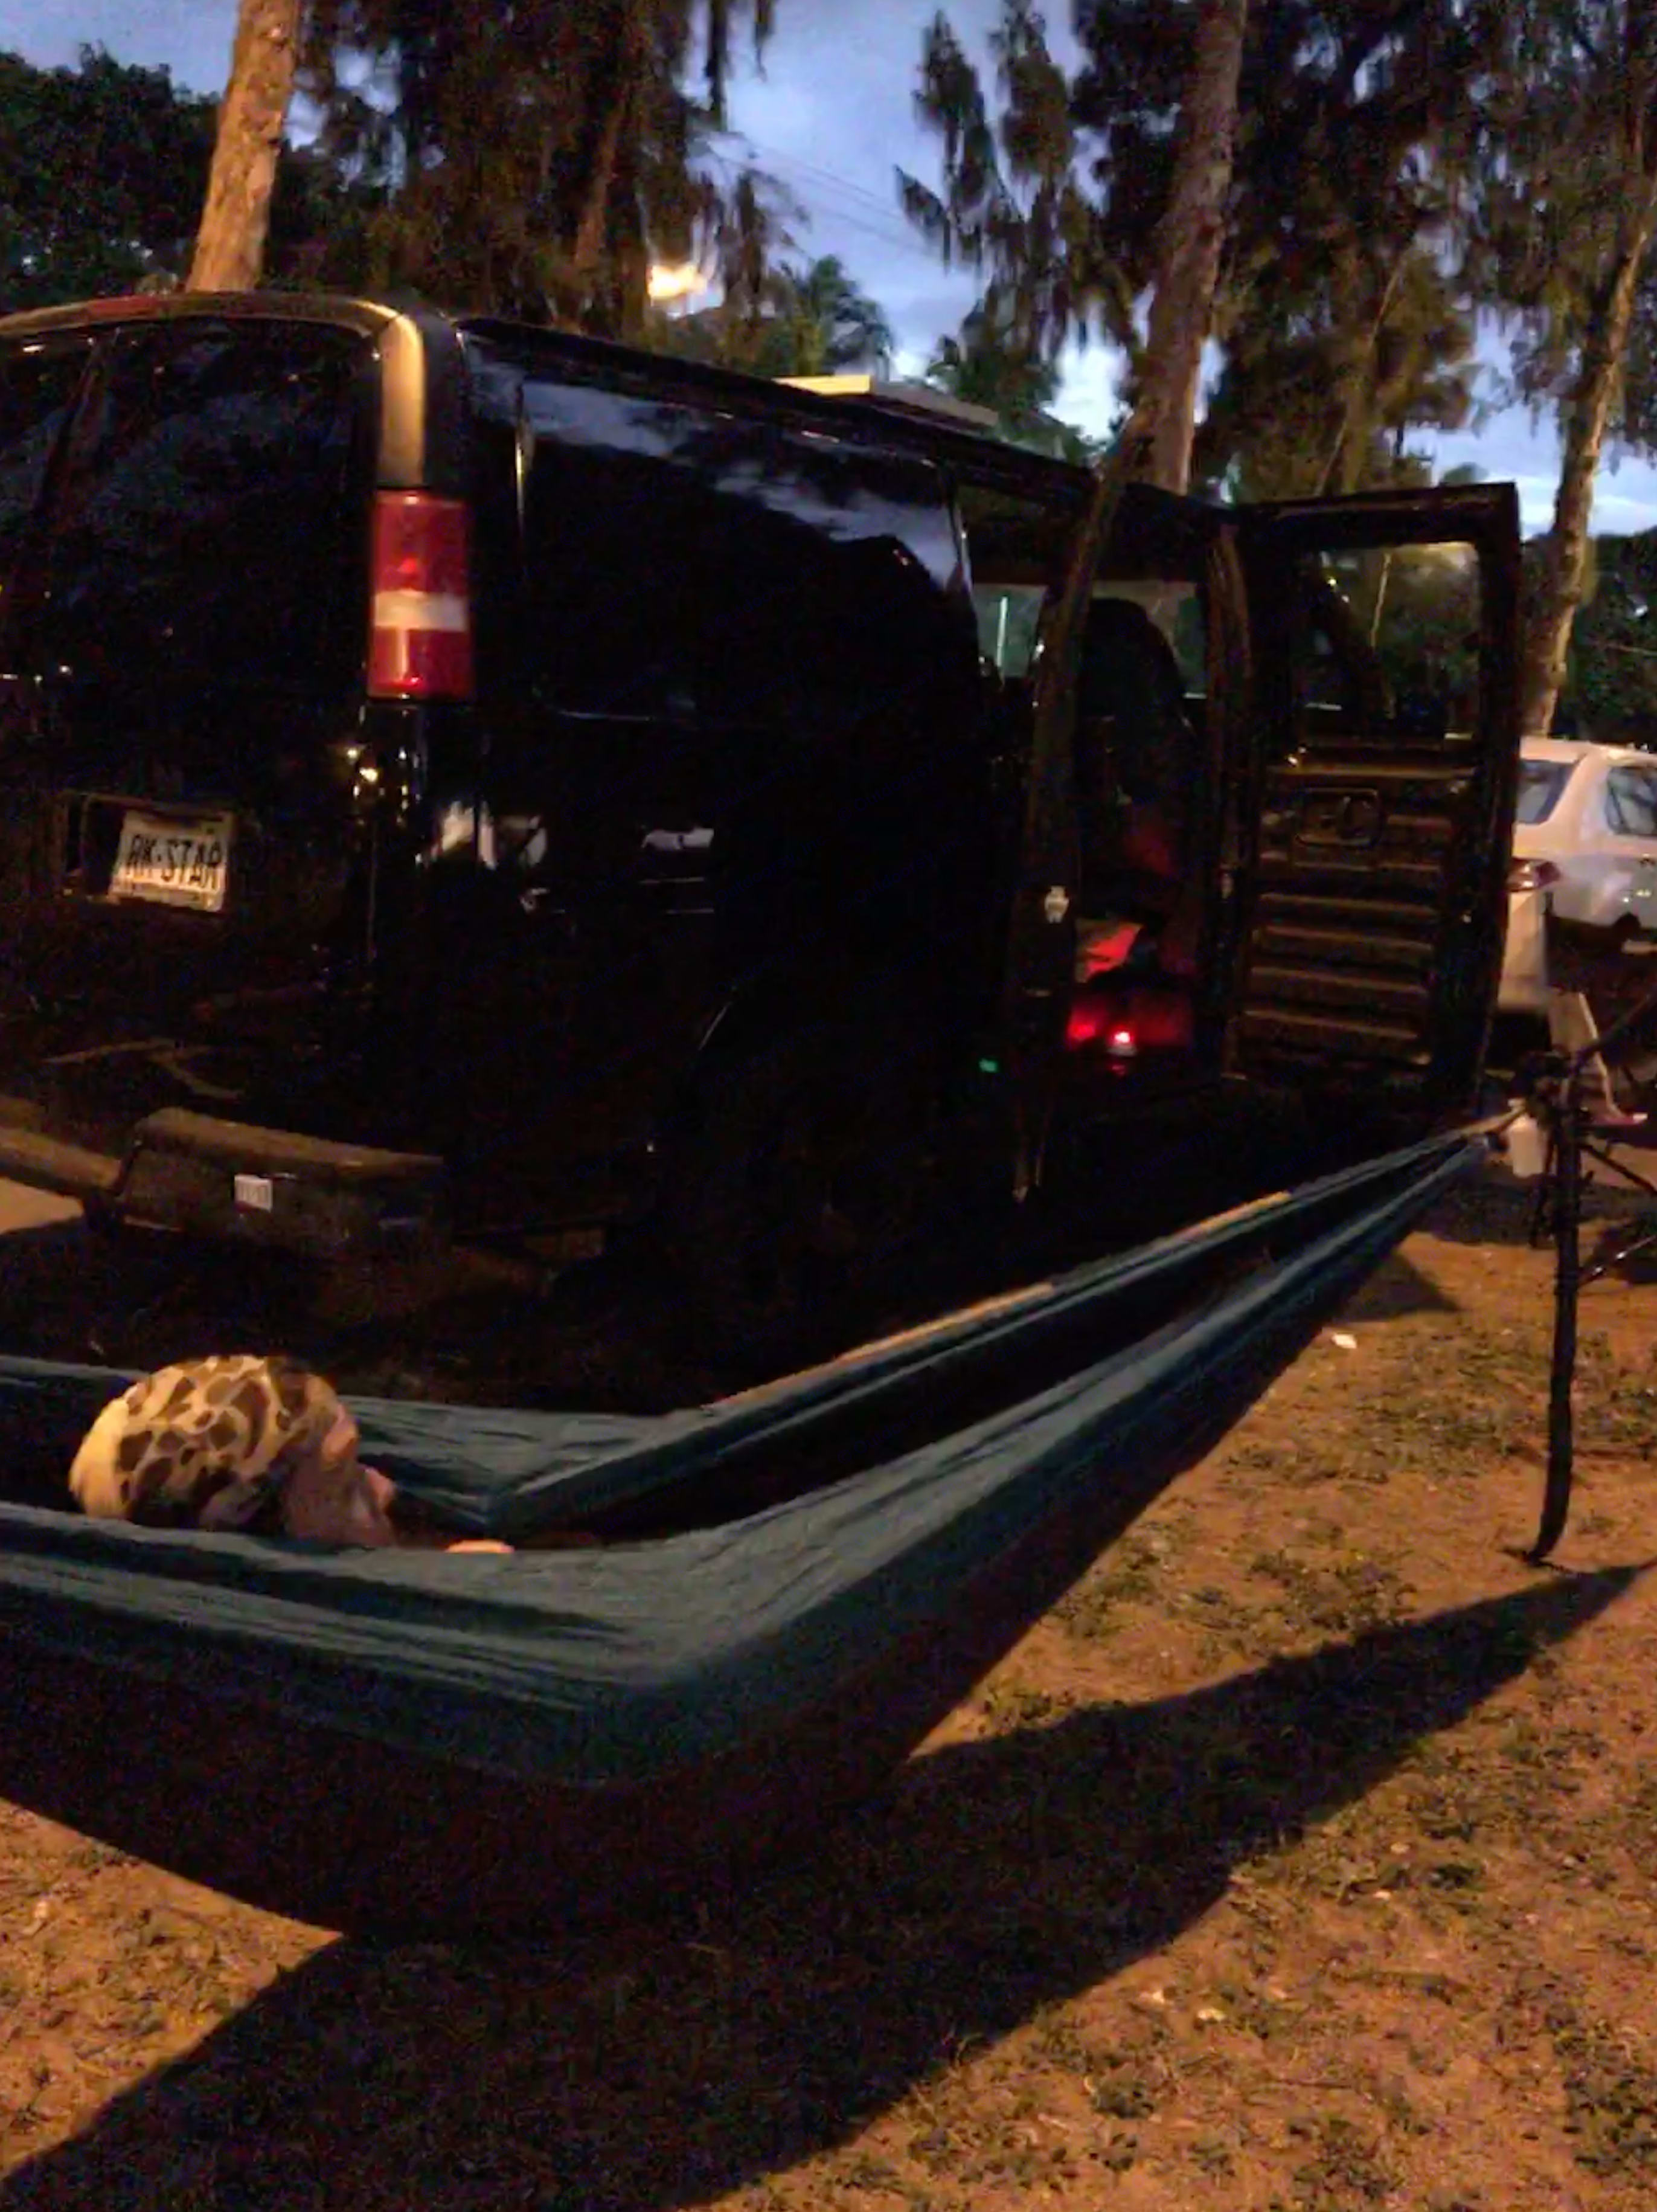 lounging in hammock, two of which are provided in the van.. Chevrolet Other 2004